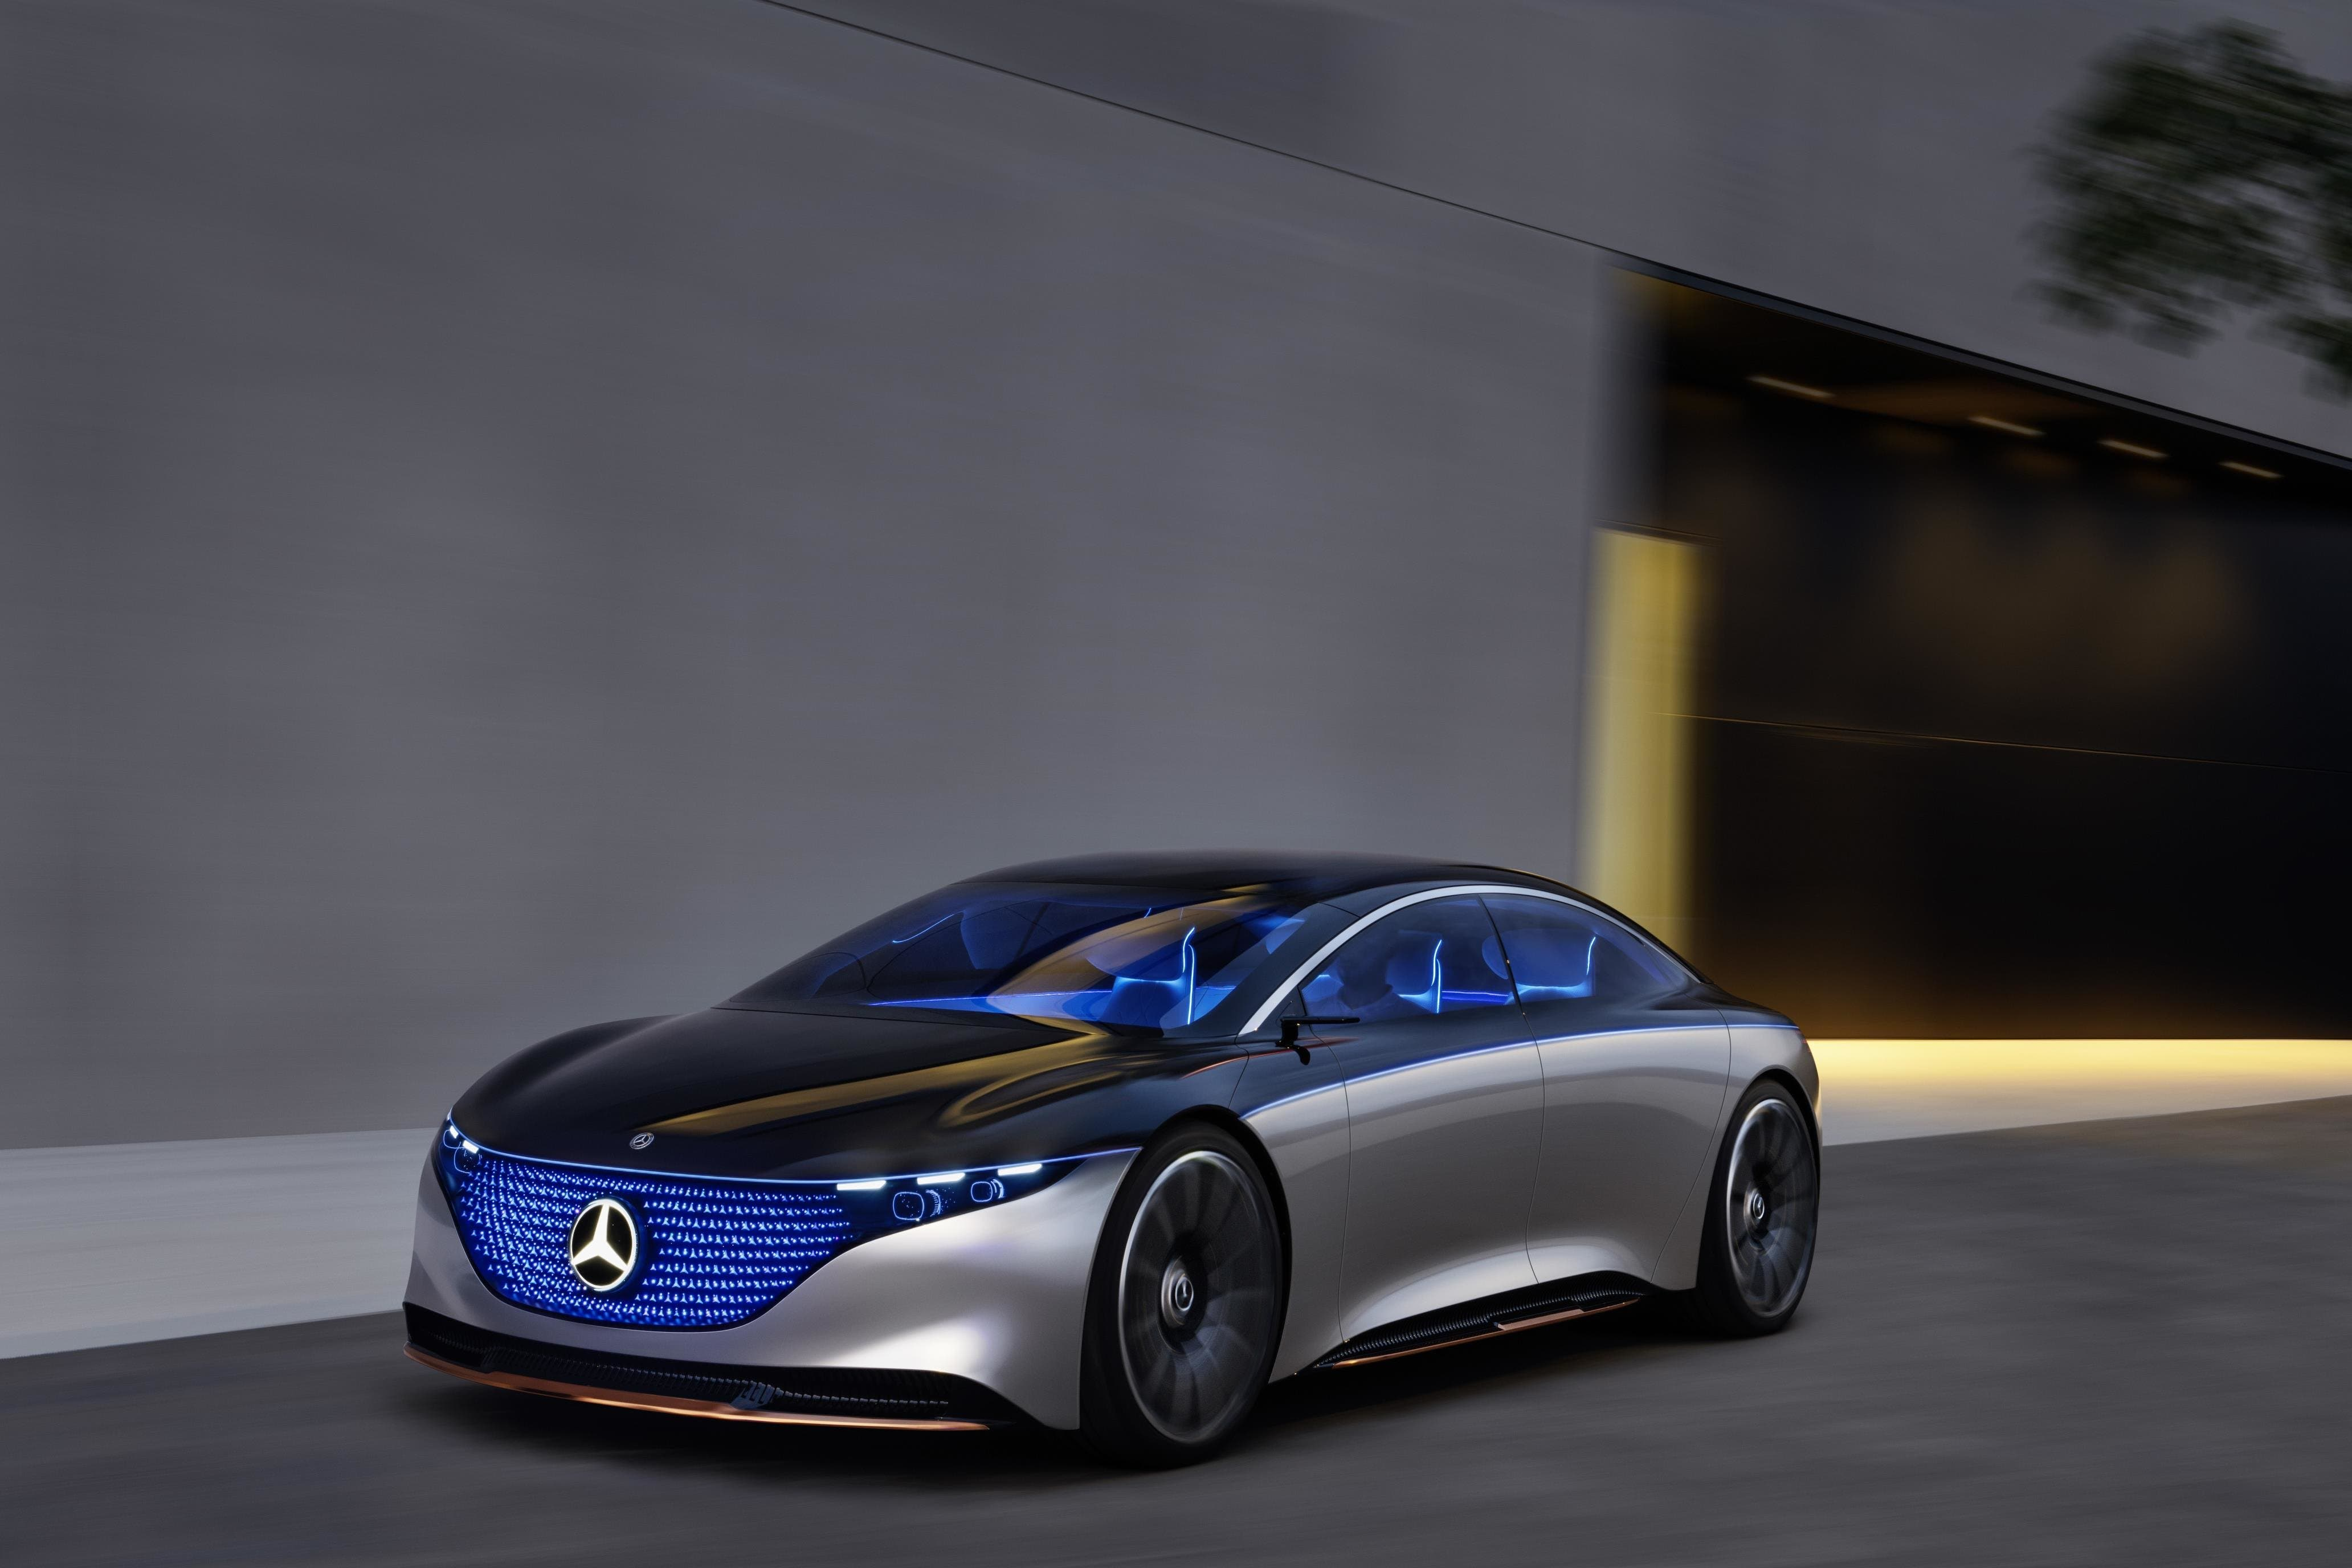 mercedes-benz-vision-eqs-03